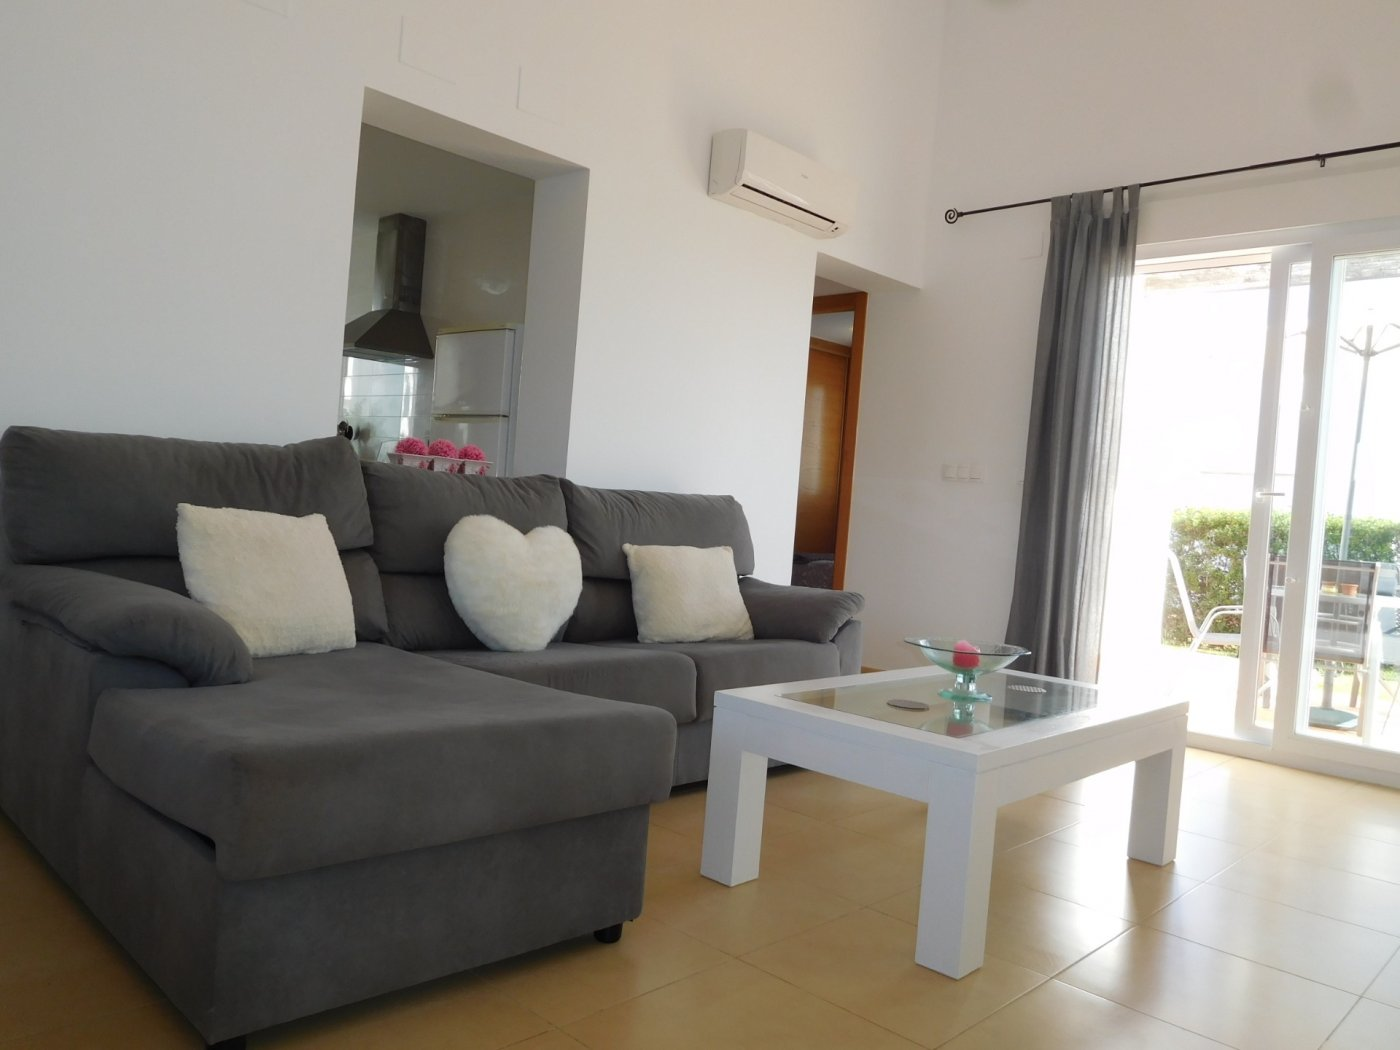 Gallery Image 5 of Casa For rent in Condado De Alhama, Alhama De Murcia With Pool